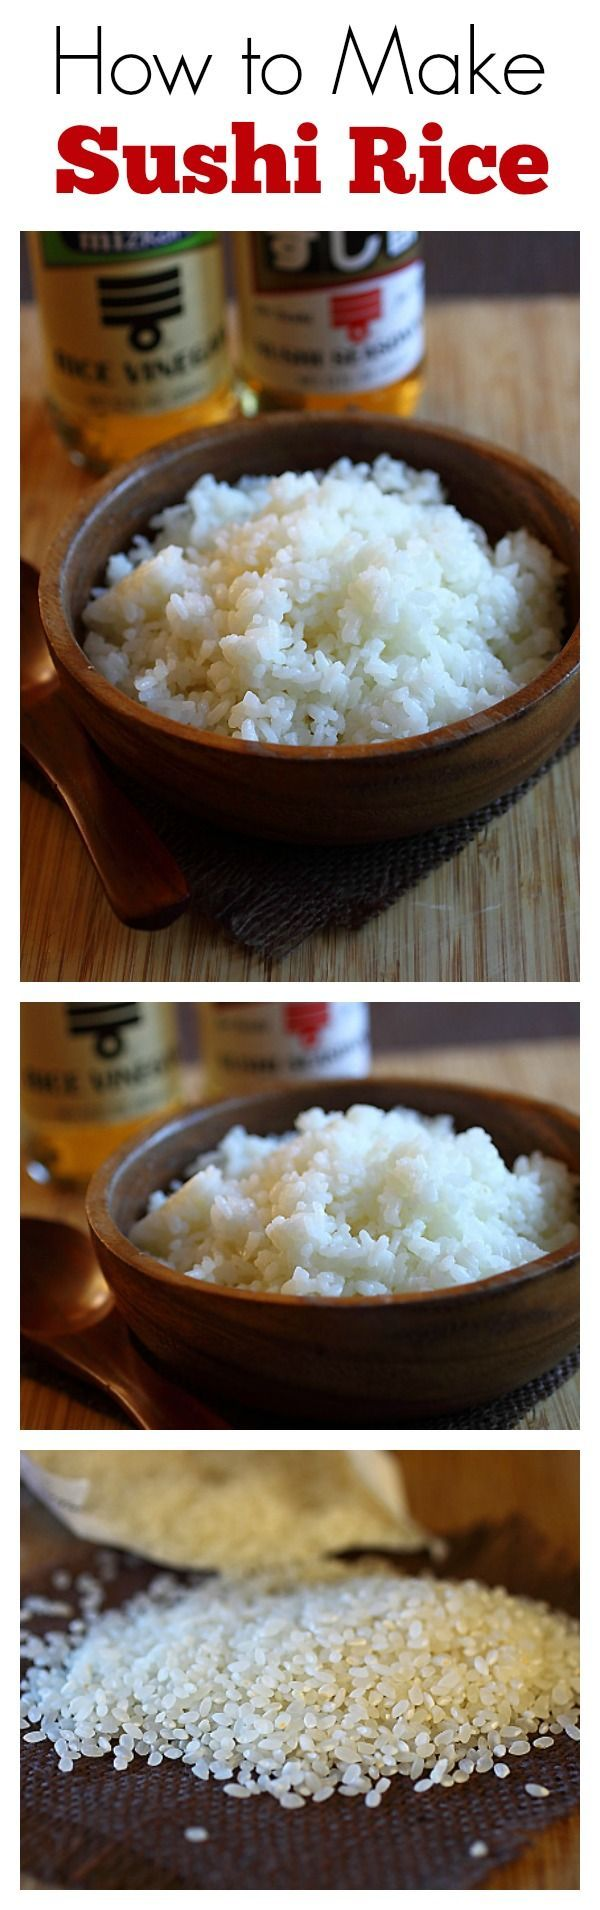 How To Make Sushi Rice? The Easiest And Nofuss Recipe To Make Sushi